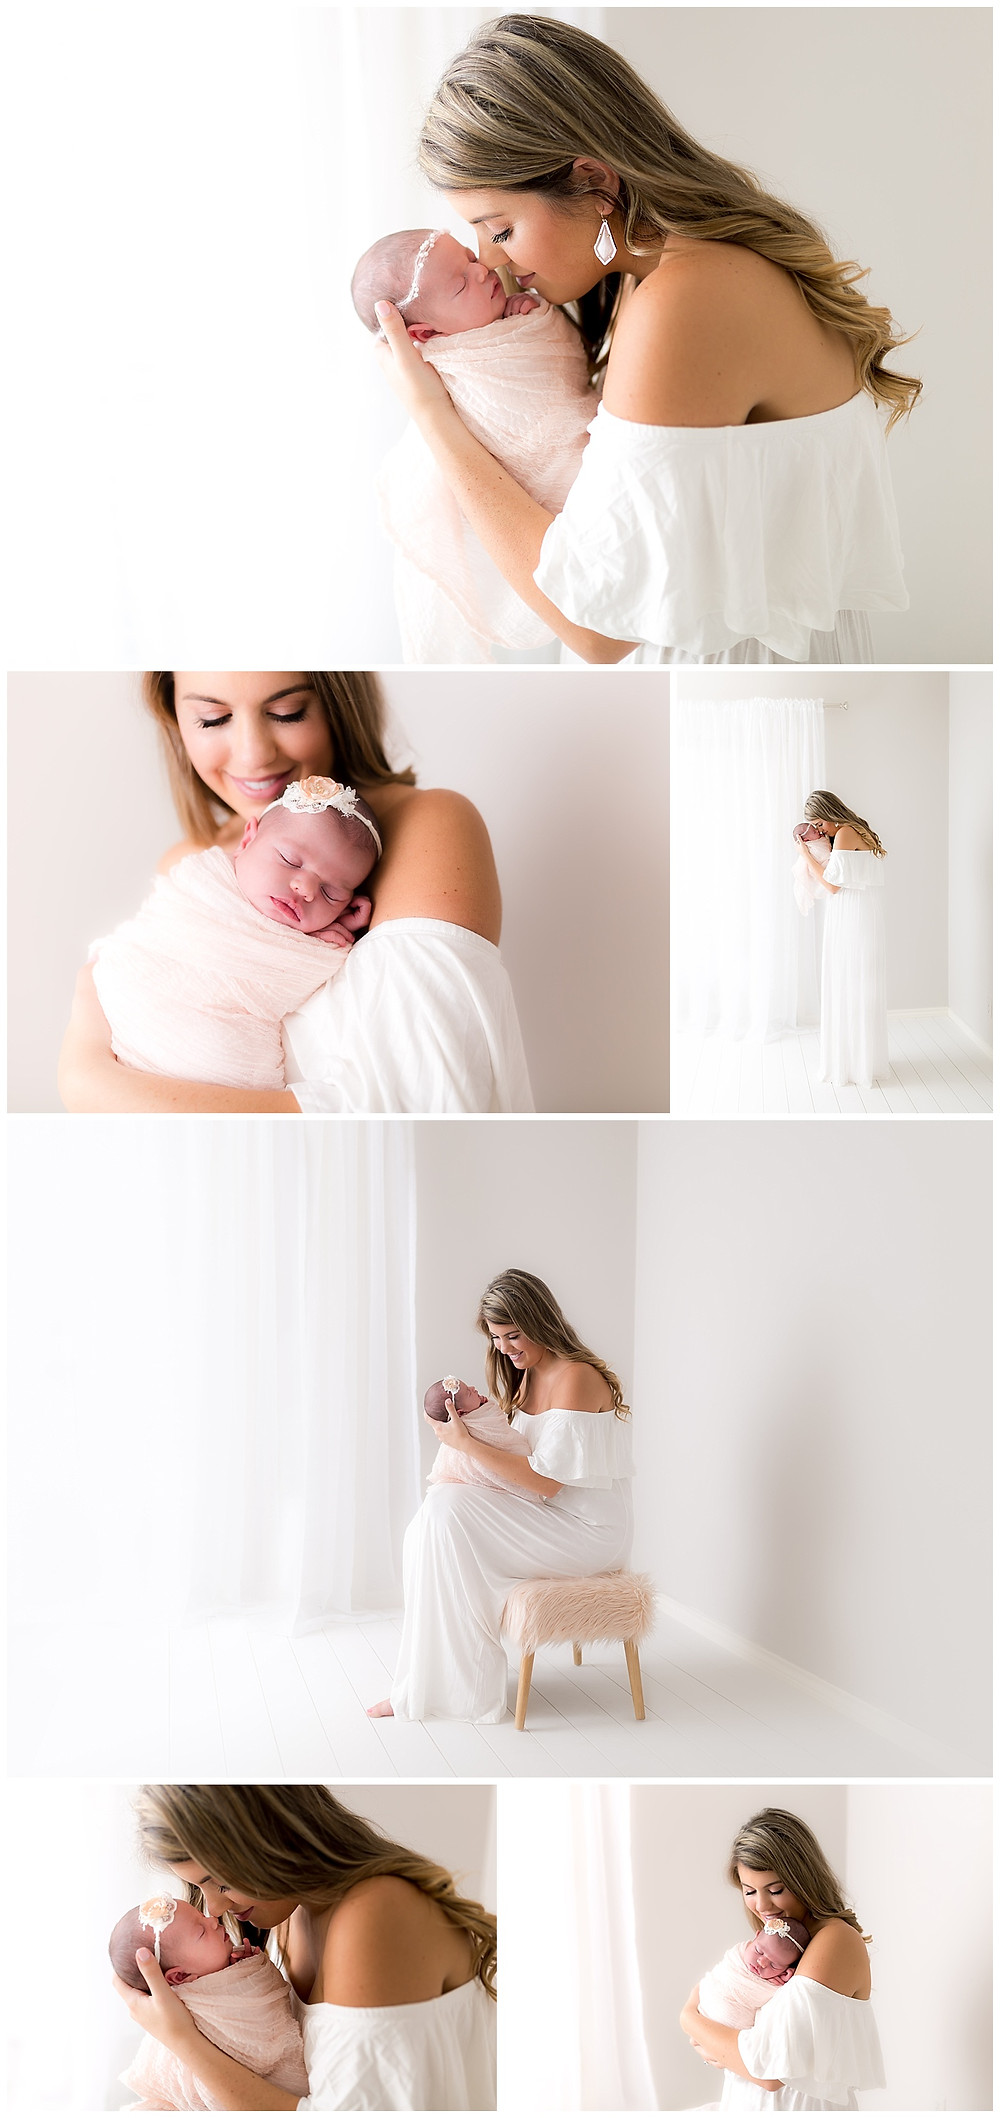 dallas newborn photographer, Lexi Meadows Photography, natural, simple, newborn photos